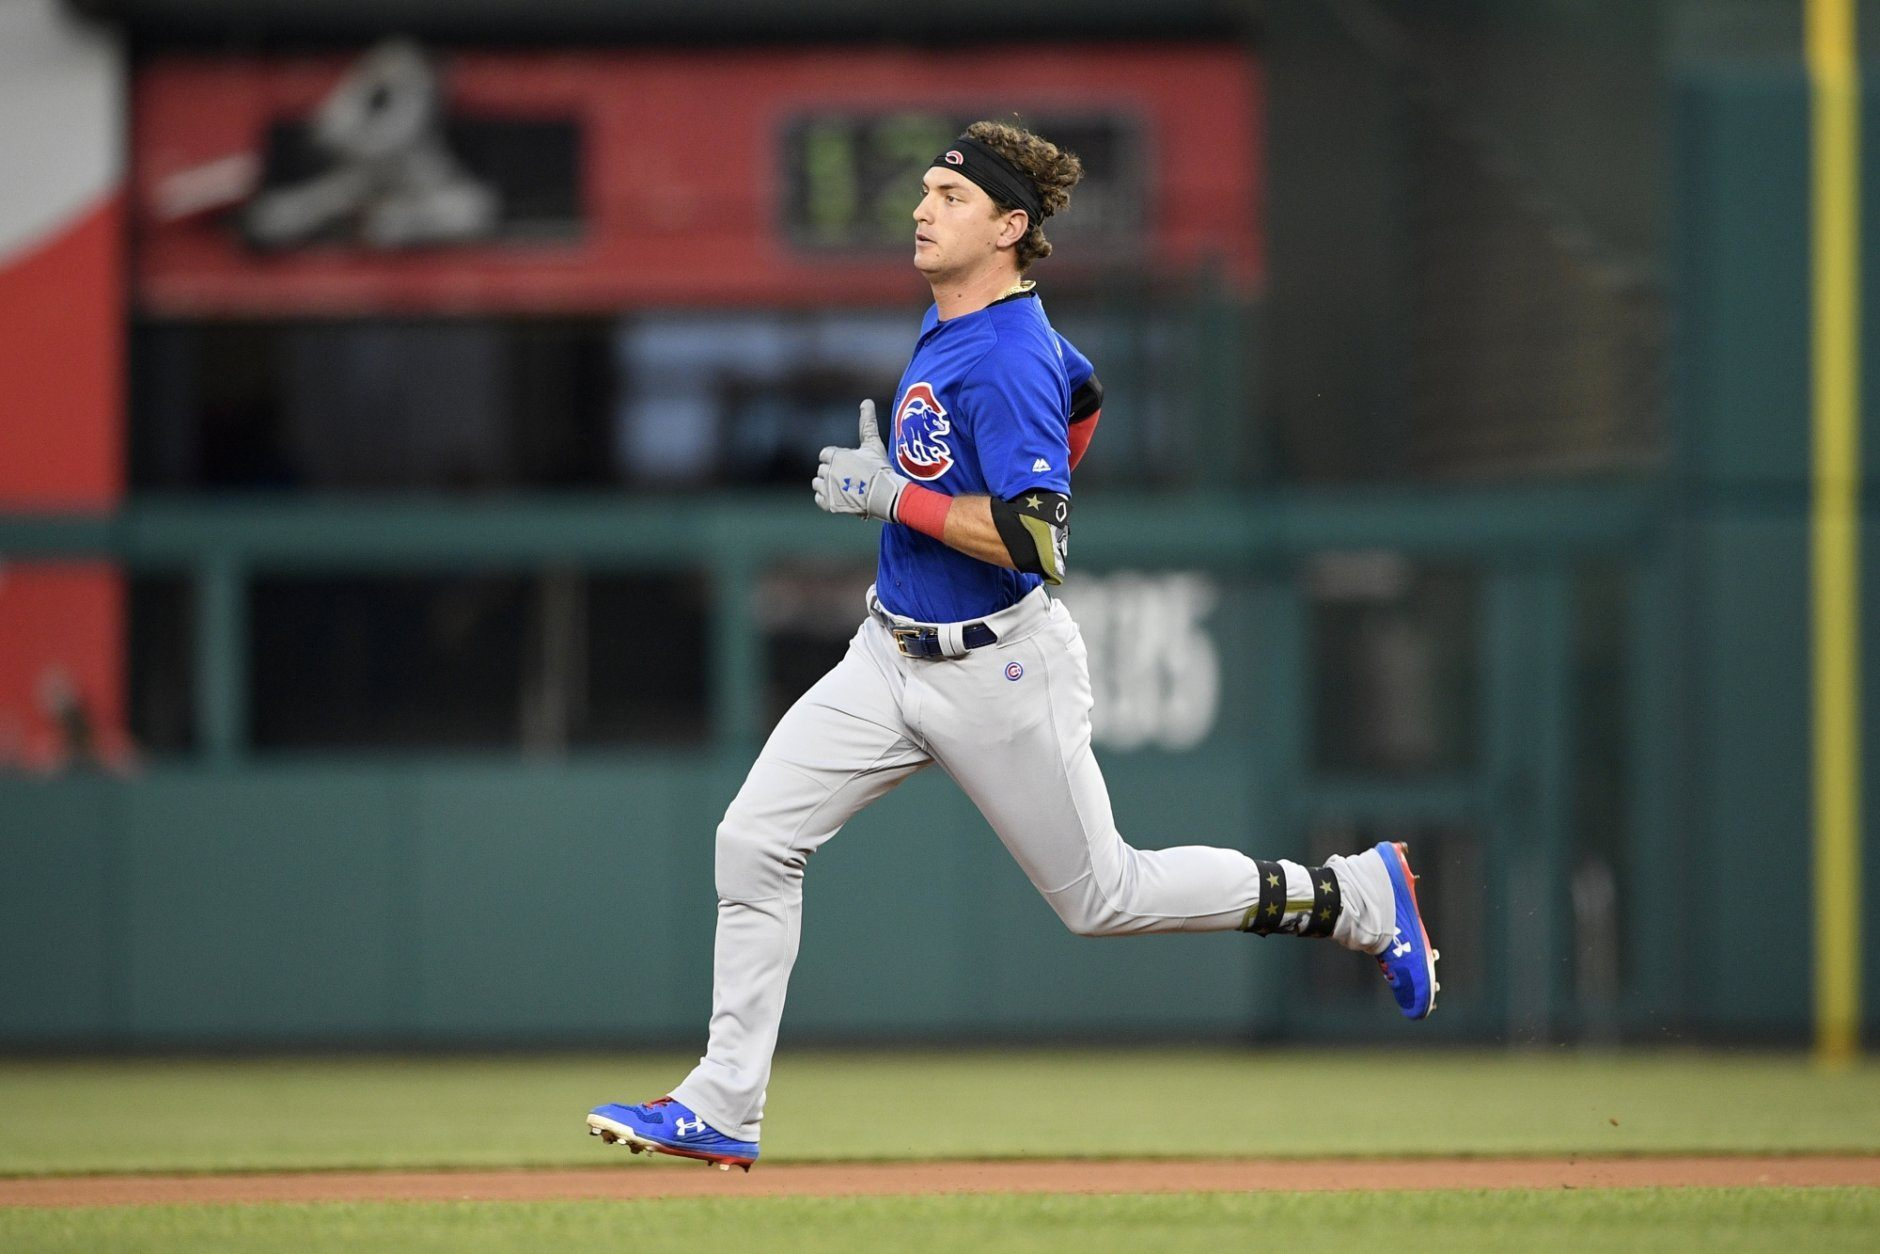 Chicago Cubs' Albert Almora Jr. runs to second with a double during the fourth inning of a baseball game against the Washington Nationals, Sunday, May 19, 2019, in Washington. (AP Photo/Nick Wass)